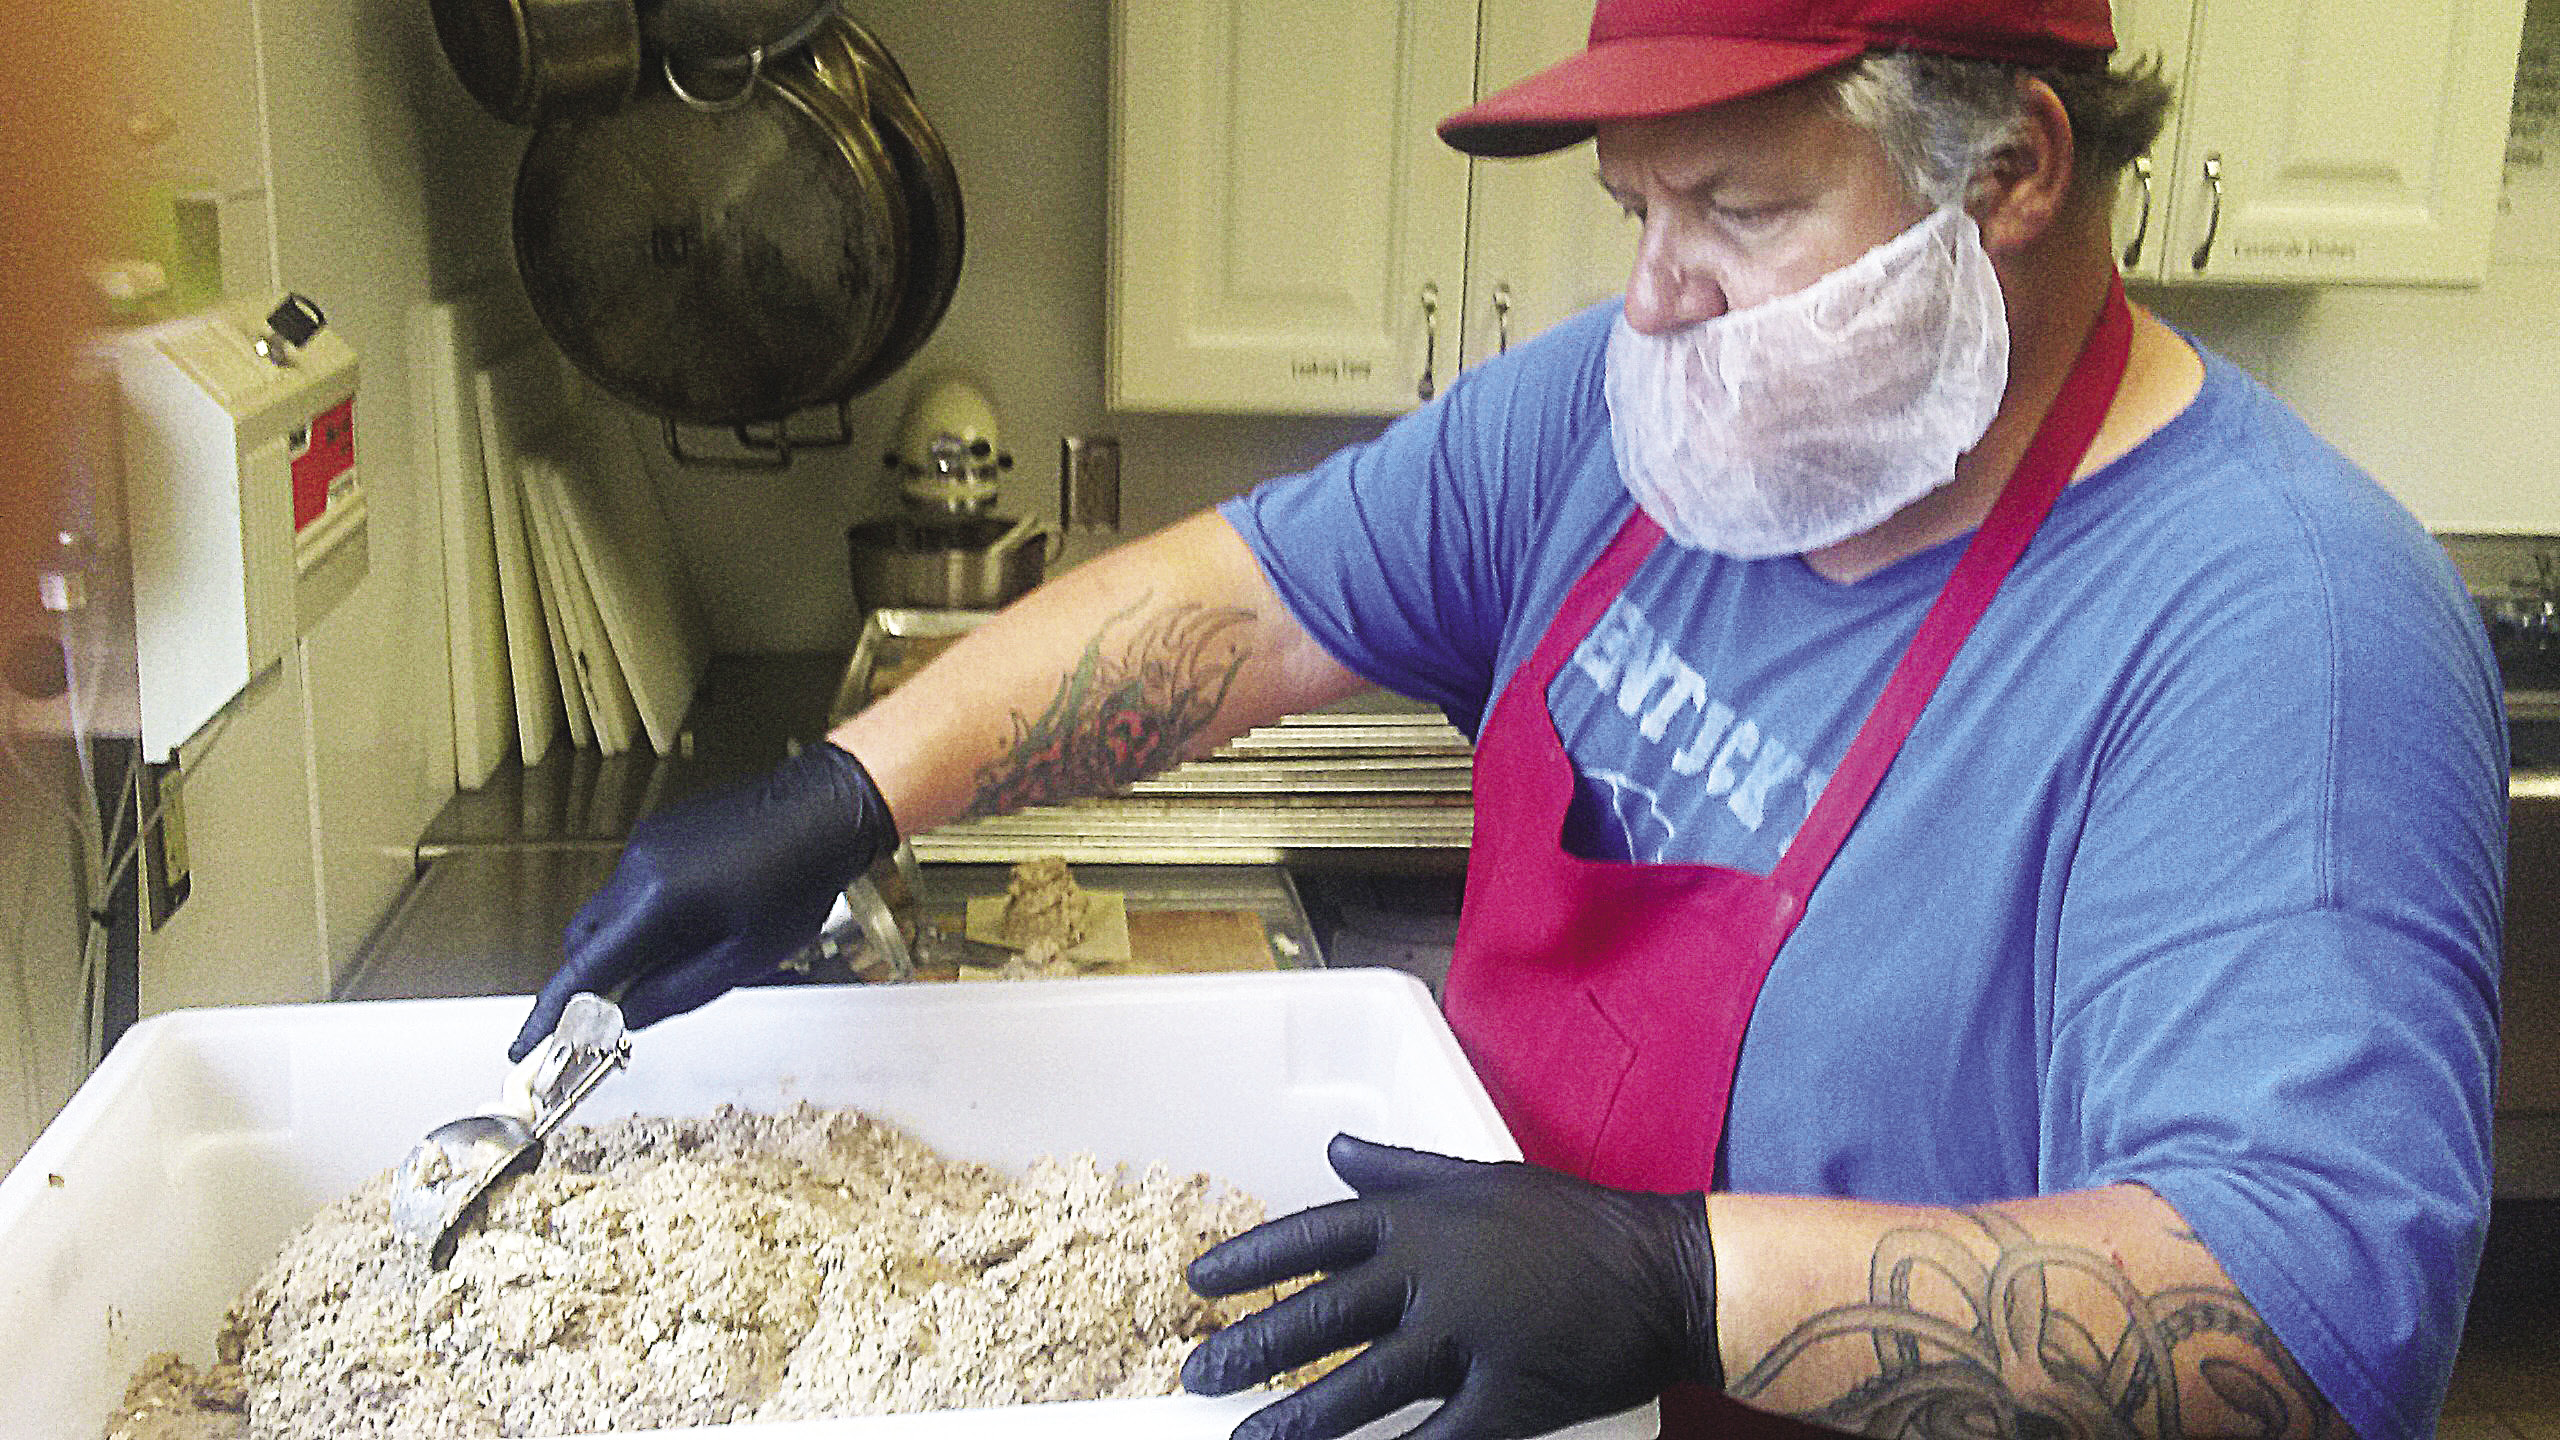 Shane Dickey of Superior Small Batch prepares vegan food at the community center in Finland. | SUBMITTED